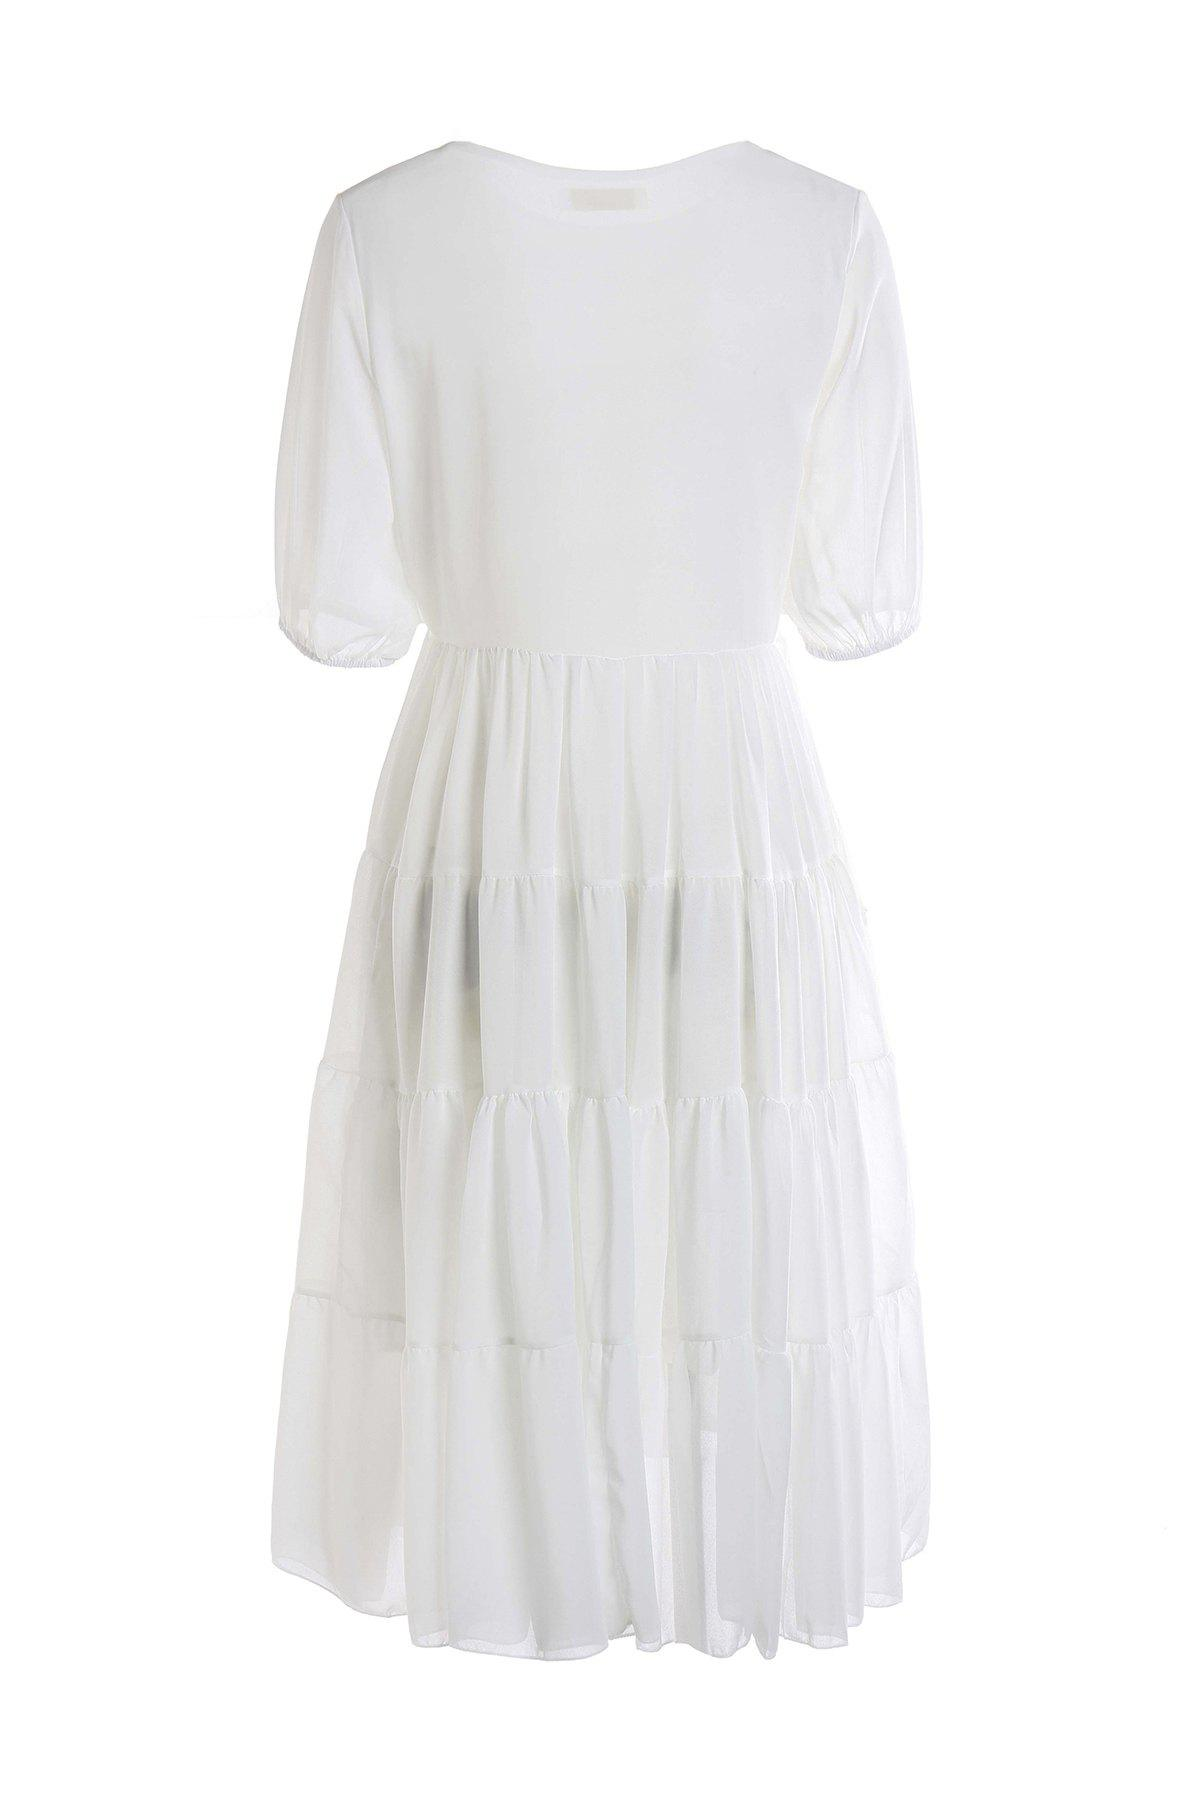 Chic Stylish Scoop Neck Short Sleeve White Women's Maxi Dress